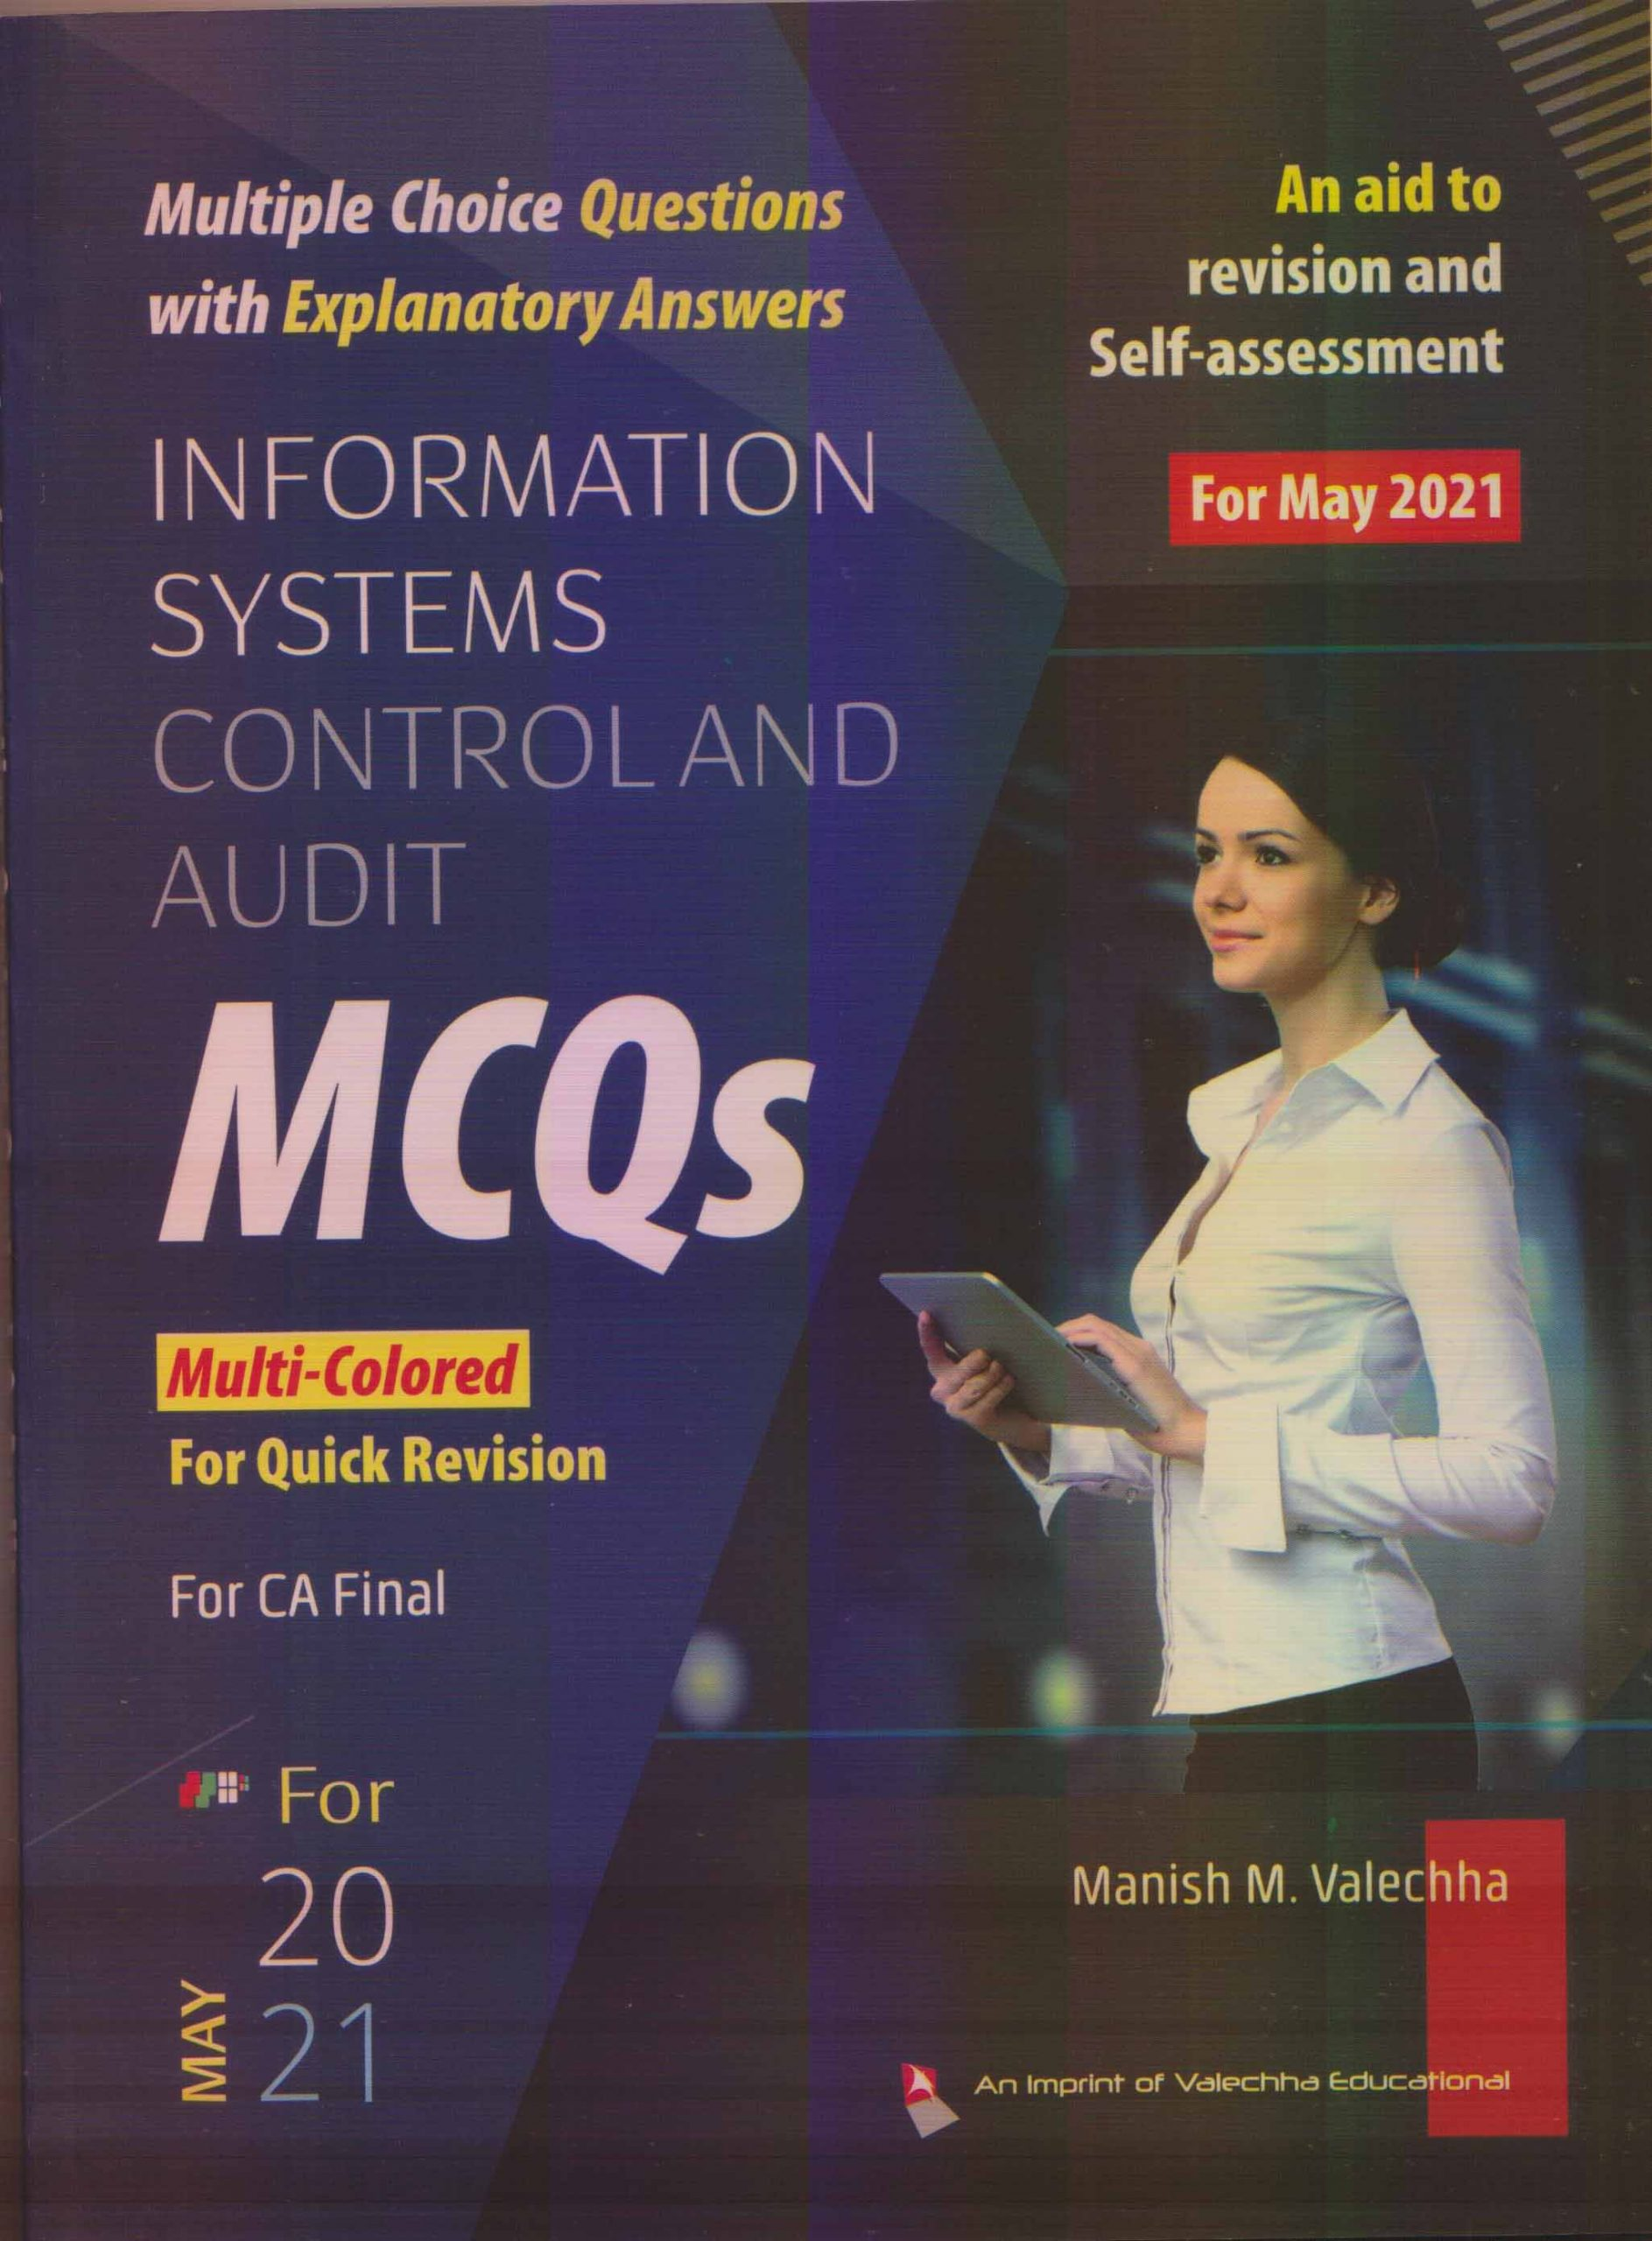 Valechha Education Information Systems Control And Audit (ISCA) Multiple Choice Questions with Explanatory Answers for CA Final By Manish M. Valechha Applicable for 2021 Exam